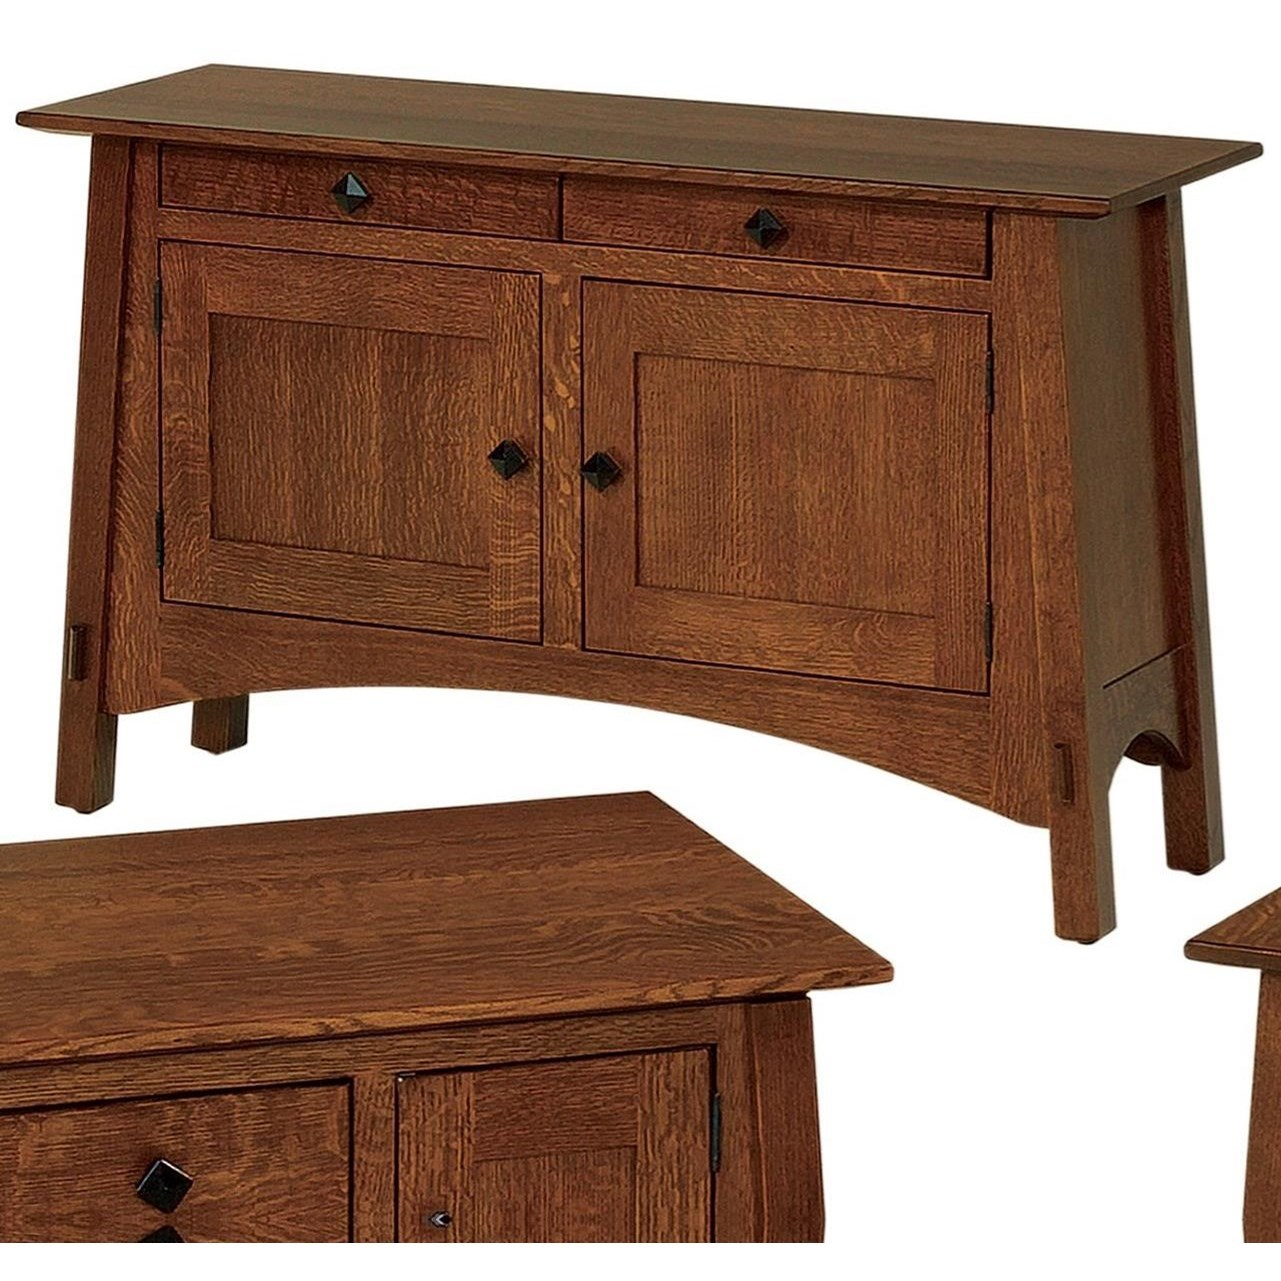 McCoy Sofa Table by Crystal Valley Hardwoods at Saugerties Furniture Mart